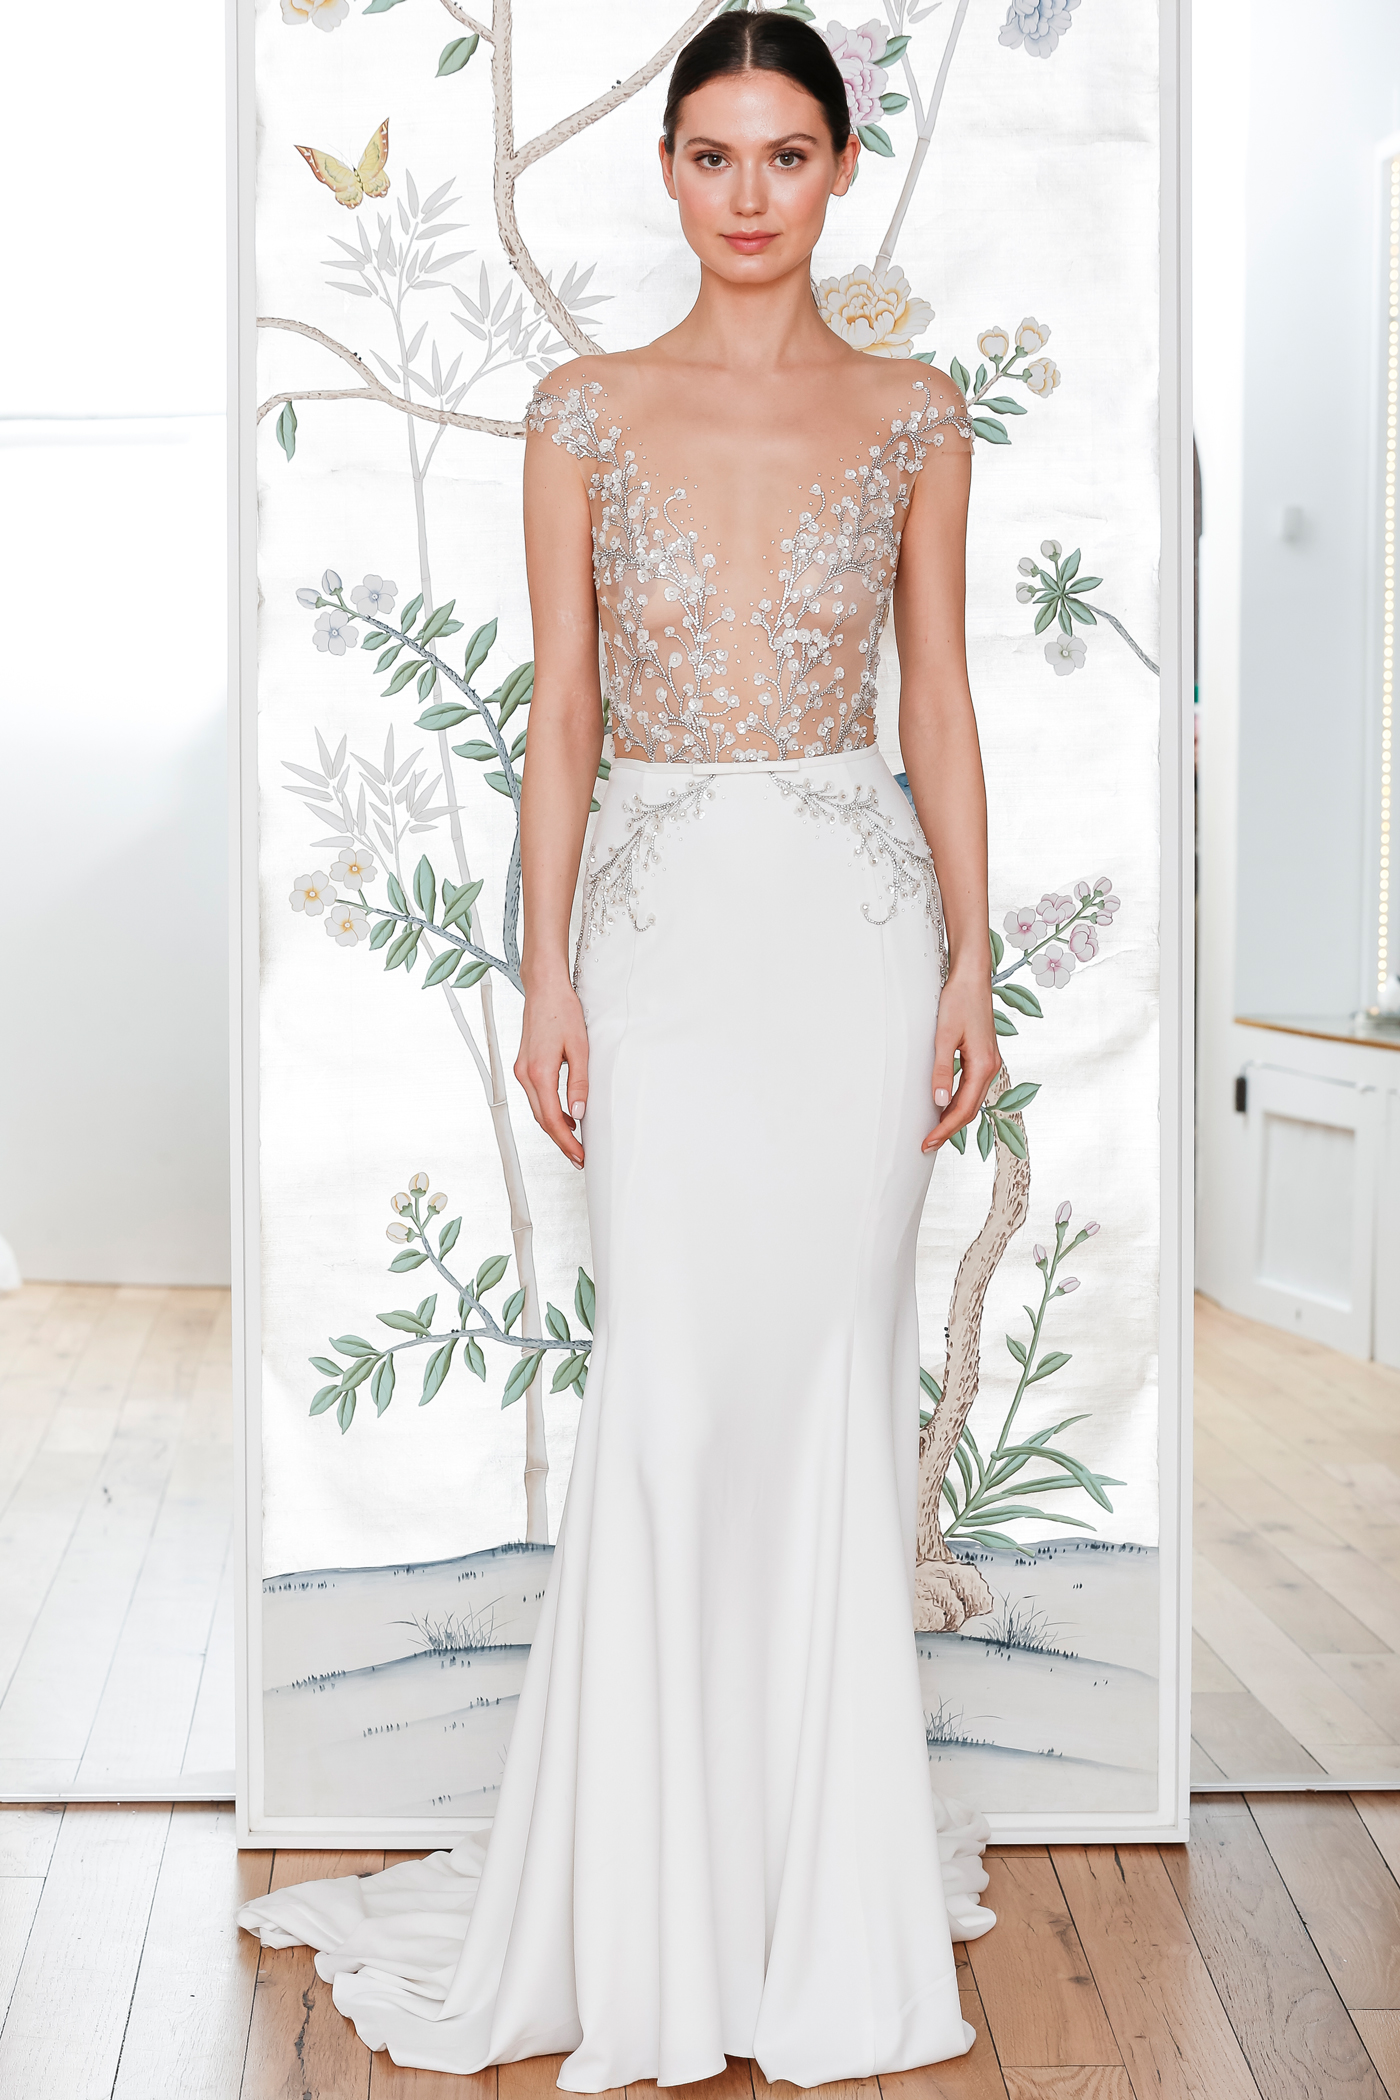 lee petra grebenau sheer beaded off the shoulder top and skirt with sequin embellishments wedding dress spring 2020